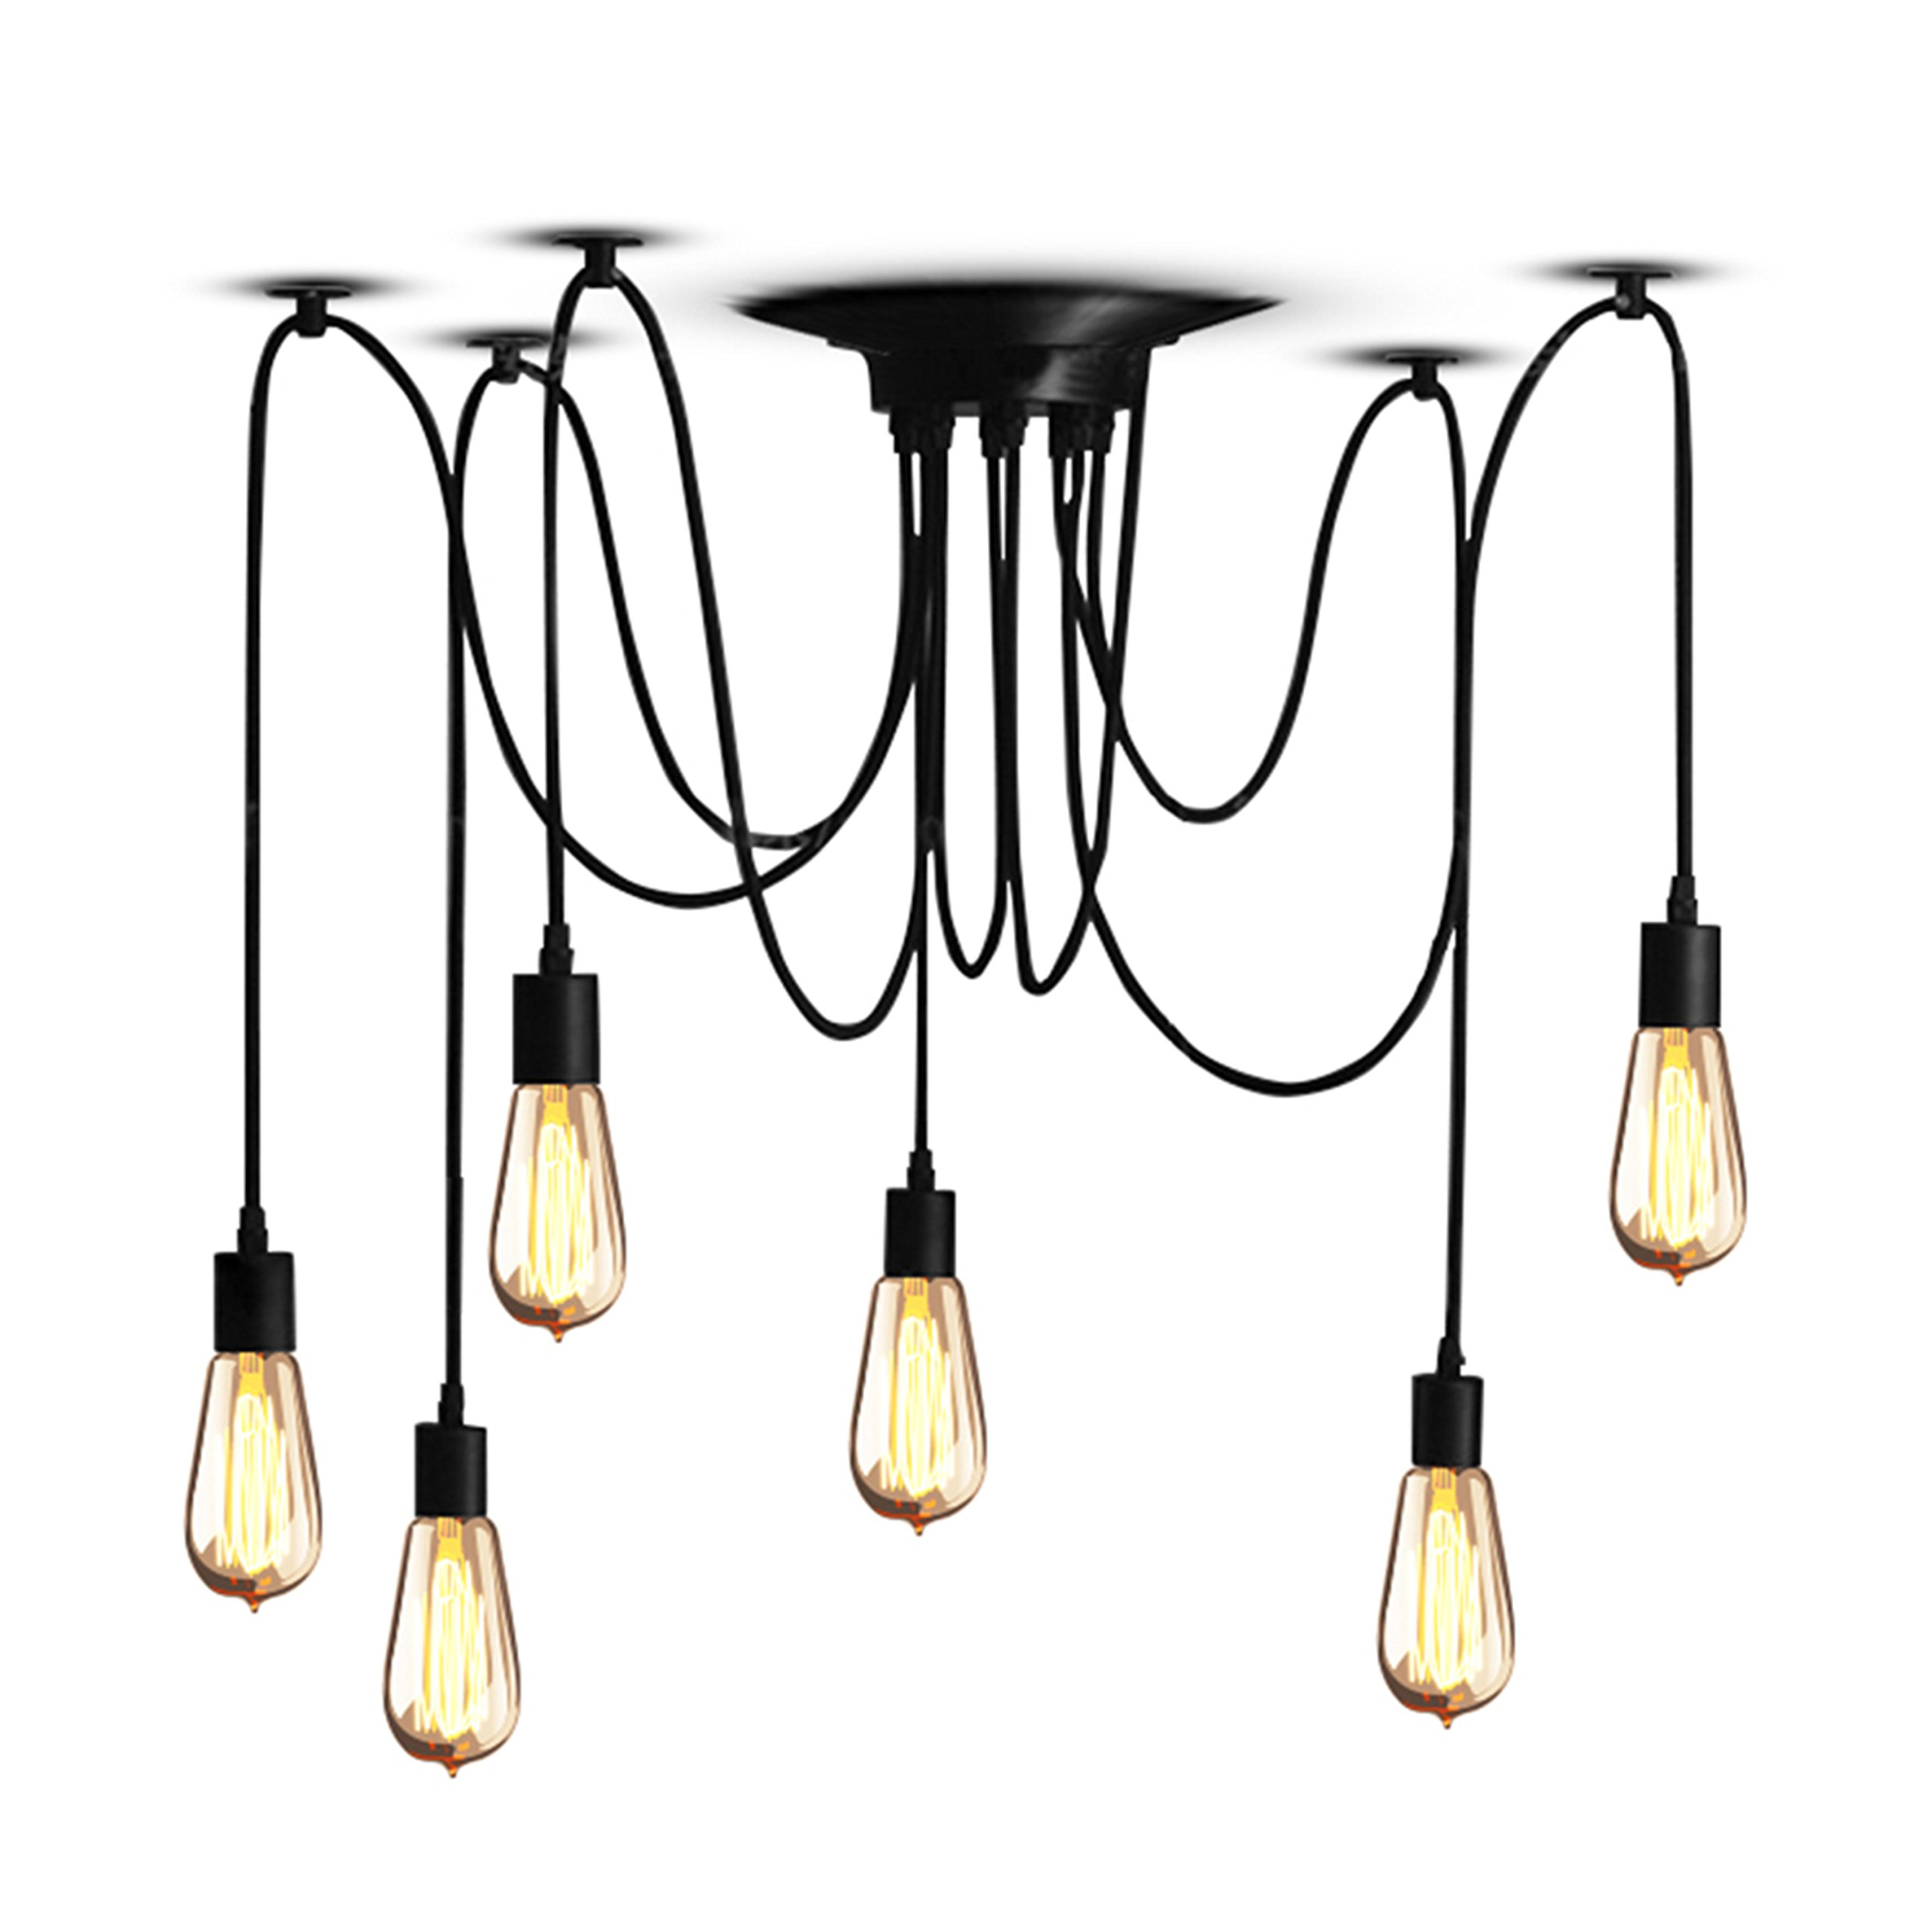 Veesee6 Arms Industrial Ceiling Spider Lamp Fixture, Home DIY E26 Edison Bulb Chandelier Lighting, Metal Hanging Pendant Lights, Retro Chic Drop-light for Bedrooms Dining Kitchen Island Living Room